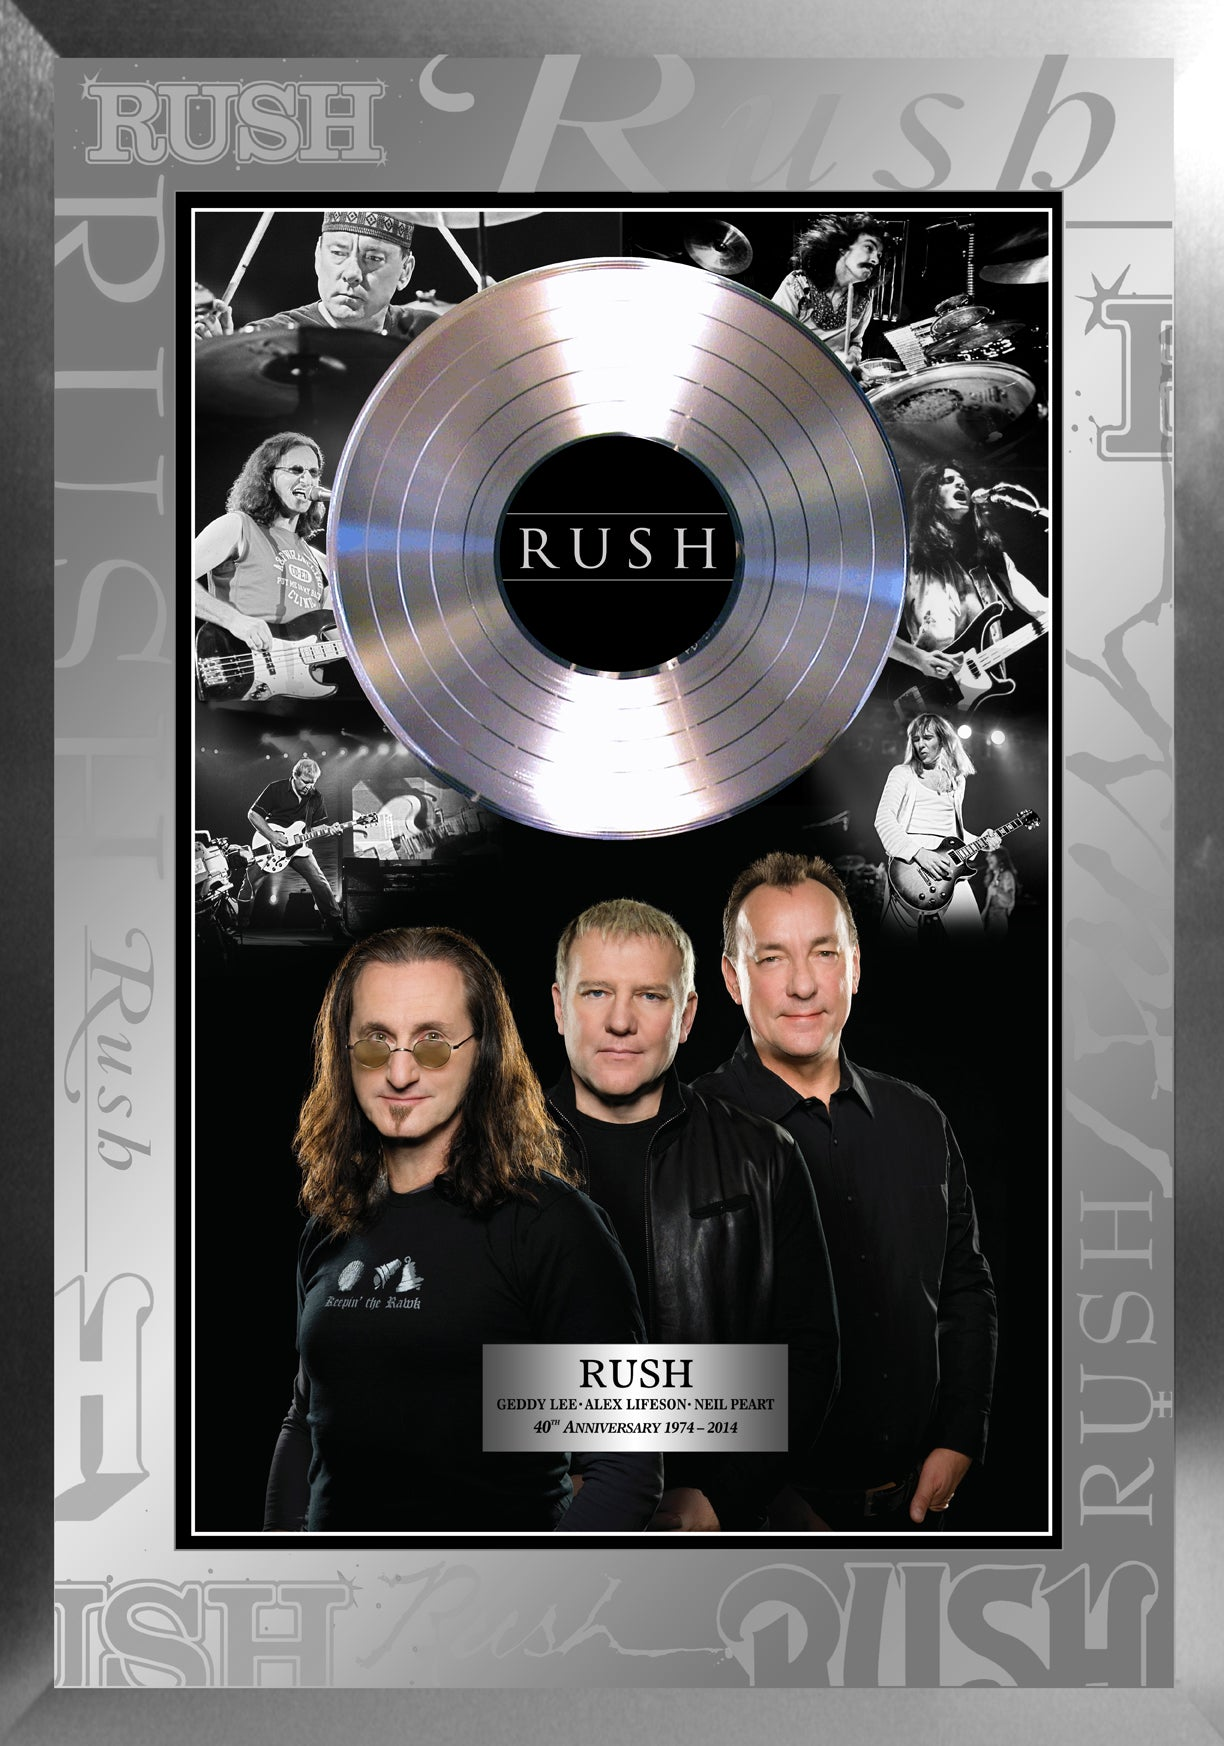 Rush Photo Collage With Replica Record Celebrating the 40th Anniversary Framed